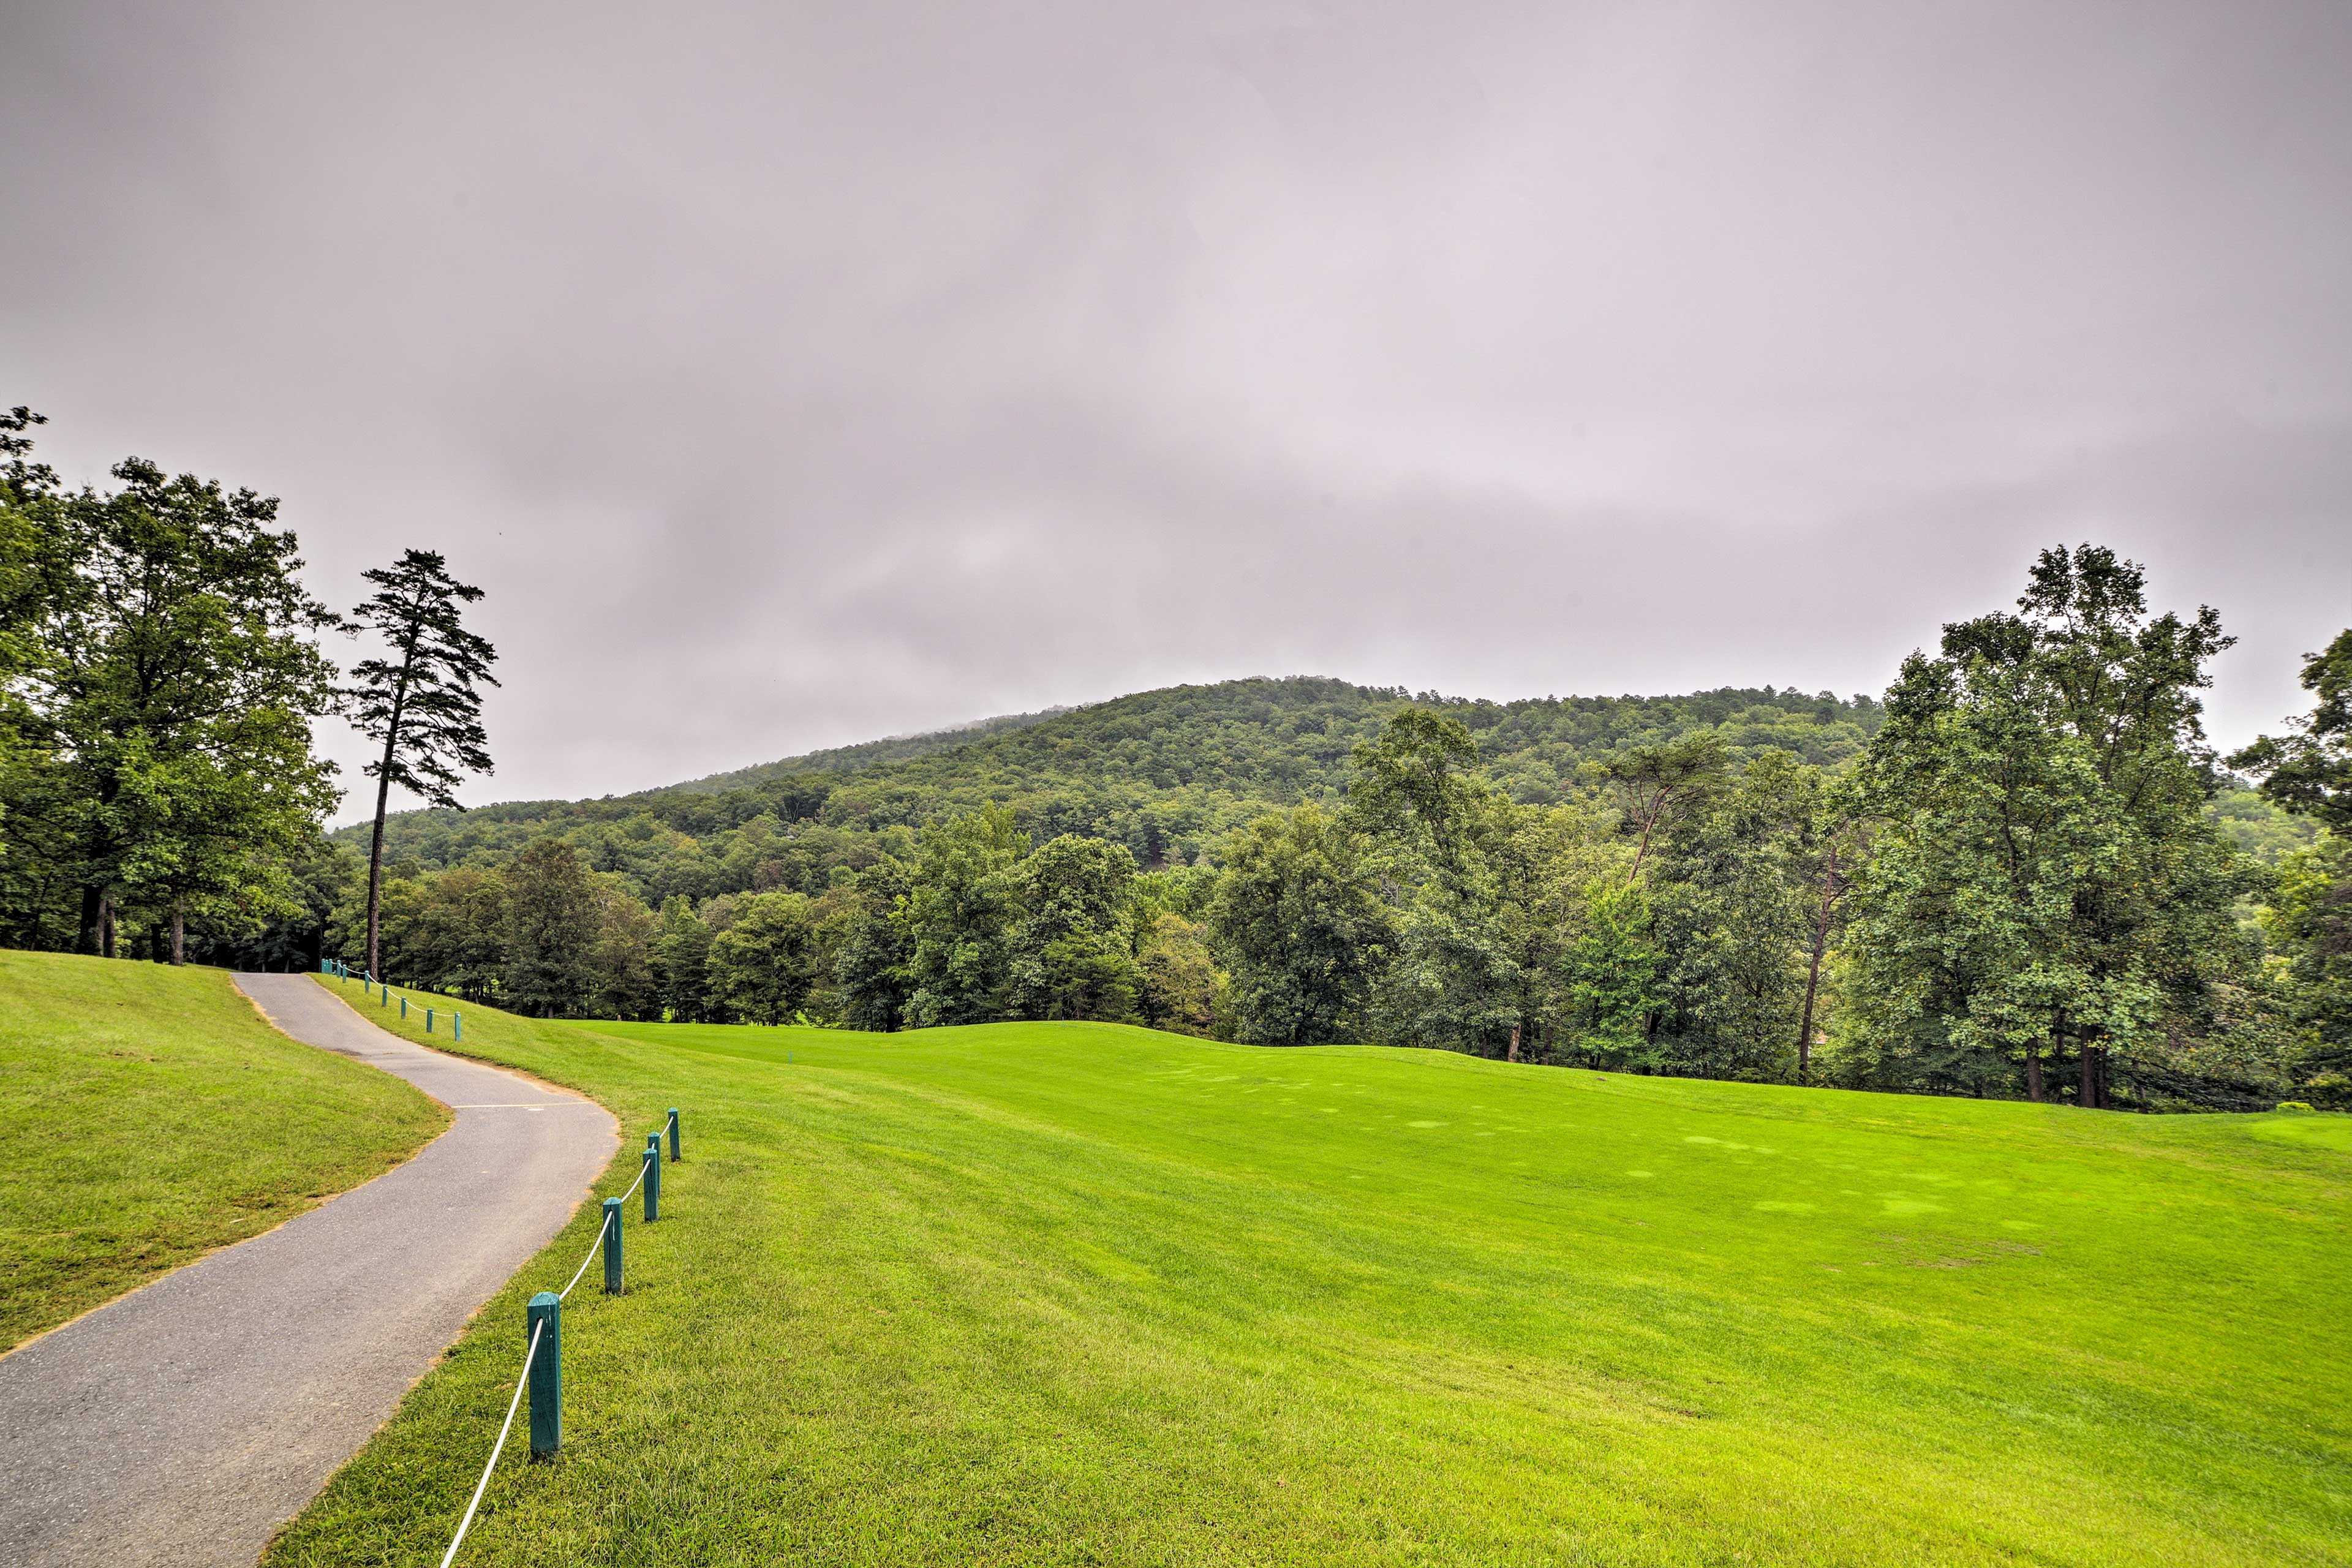 Enjoy the views along the drive to this mountainside property.